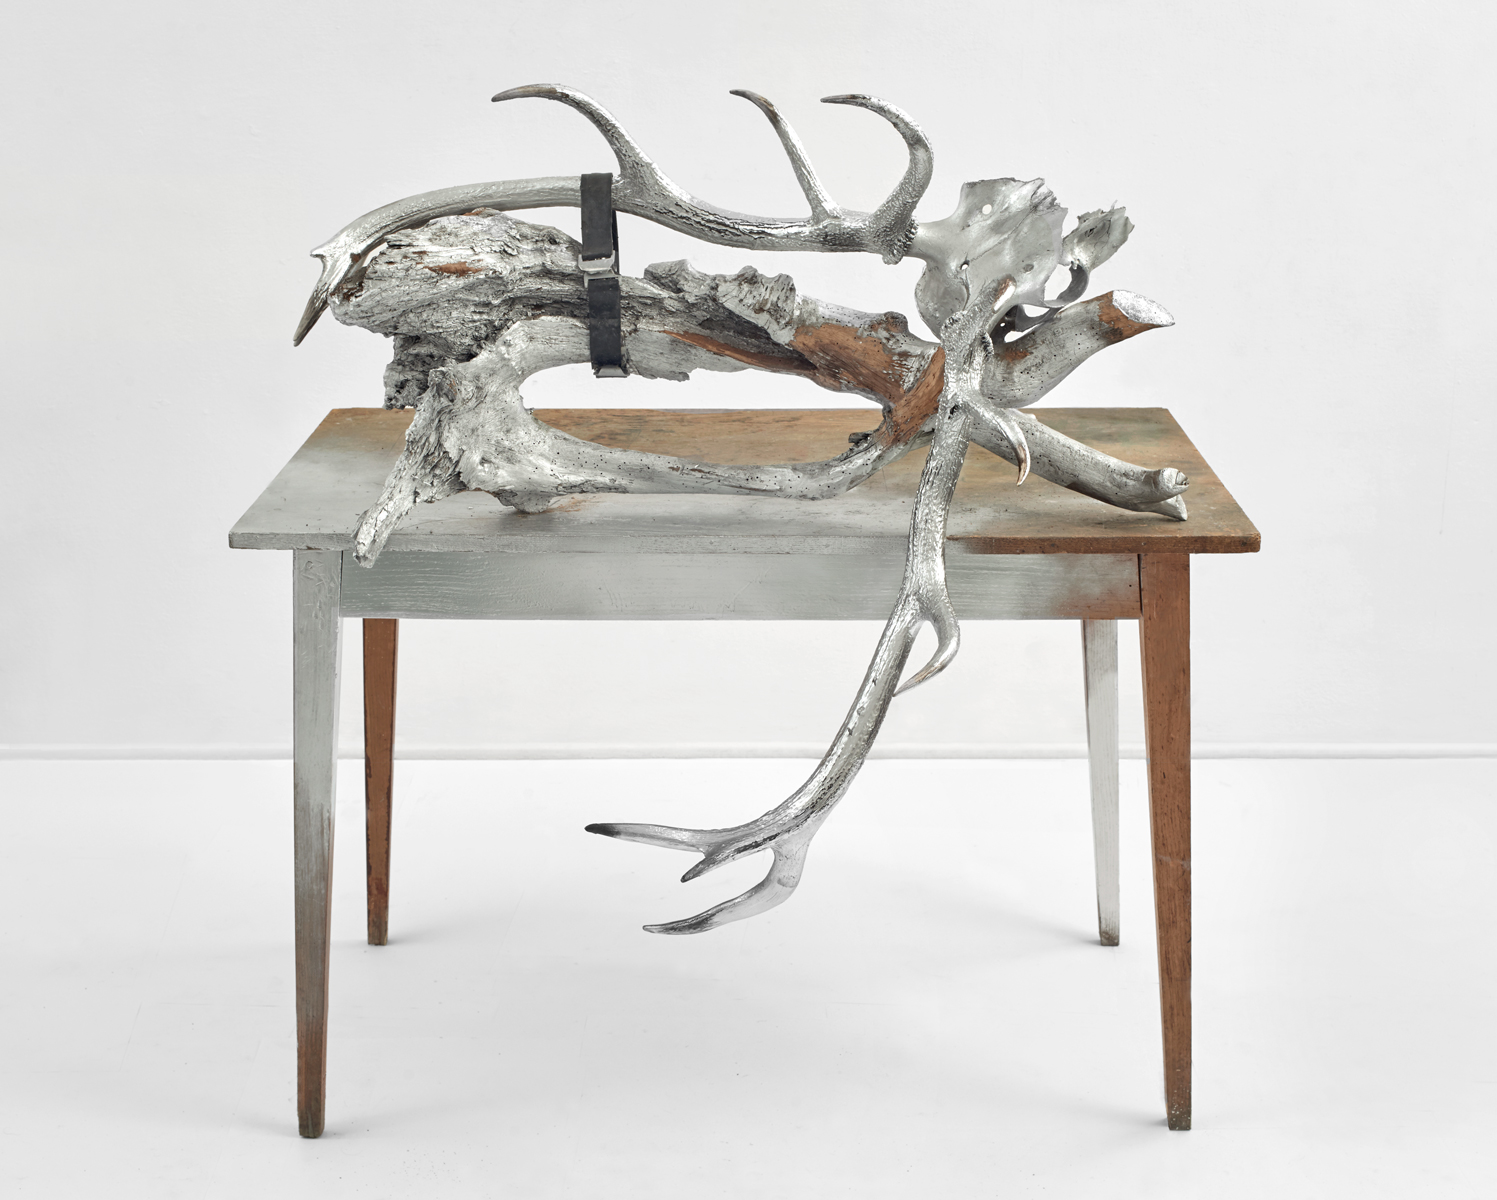 ACTUS PURUS / Bough / 2016 / 100 x 141 x 83 cm / table, bough, horns, strapping belt, enamel